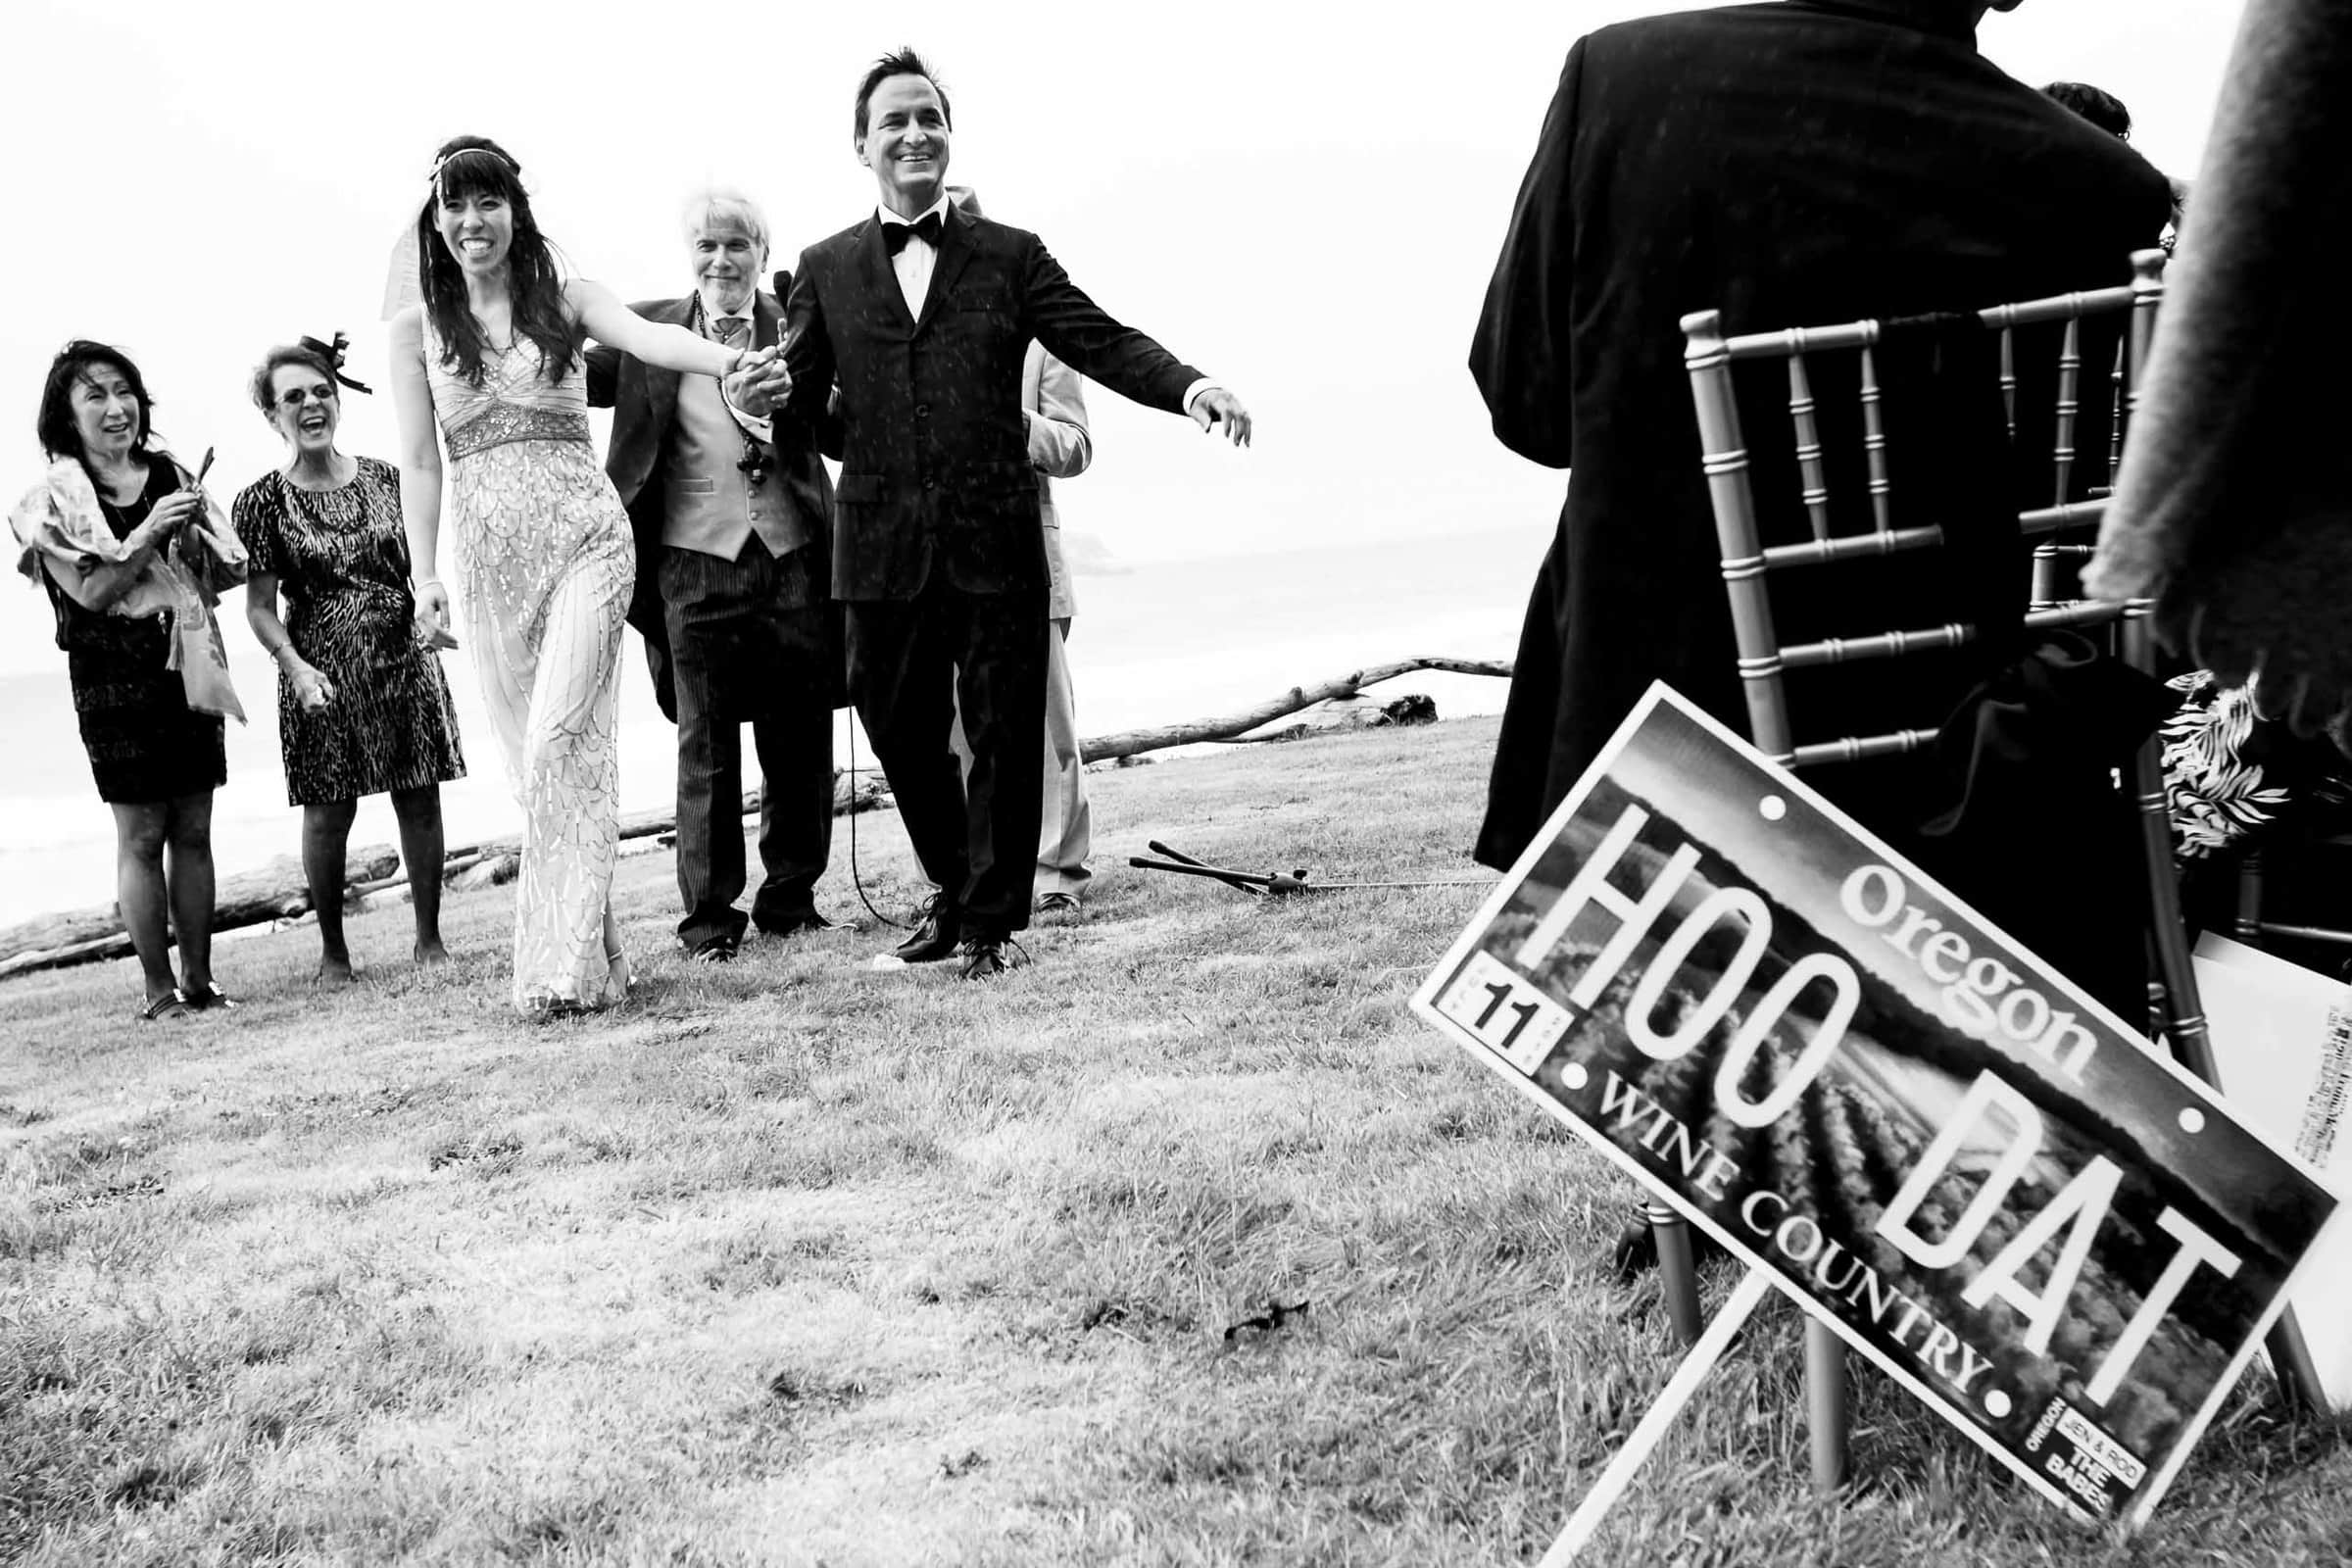 Bride and groom exiting their ceremony with New Orleans HOO DAT signs during their Manzanita elopement ceremony in Oregon